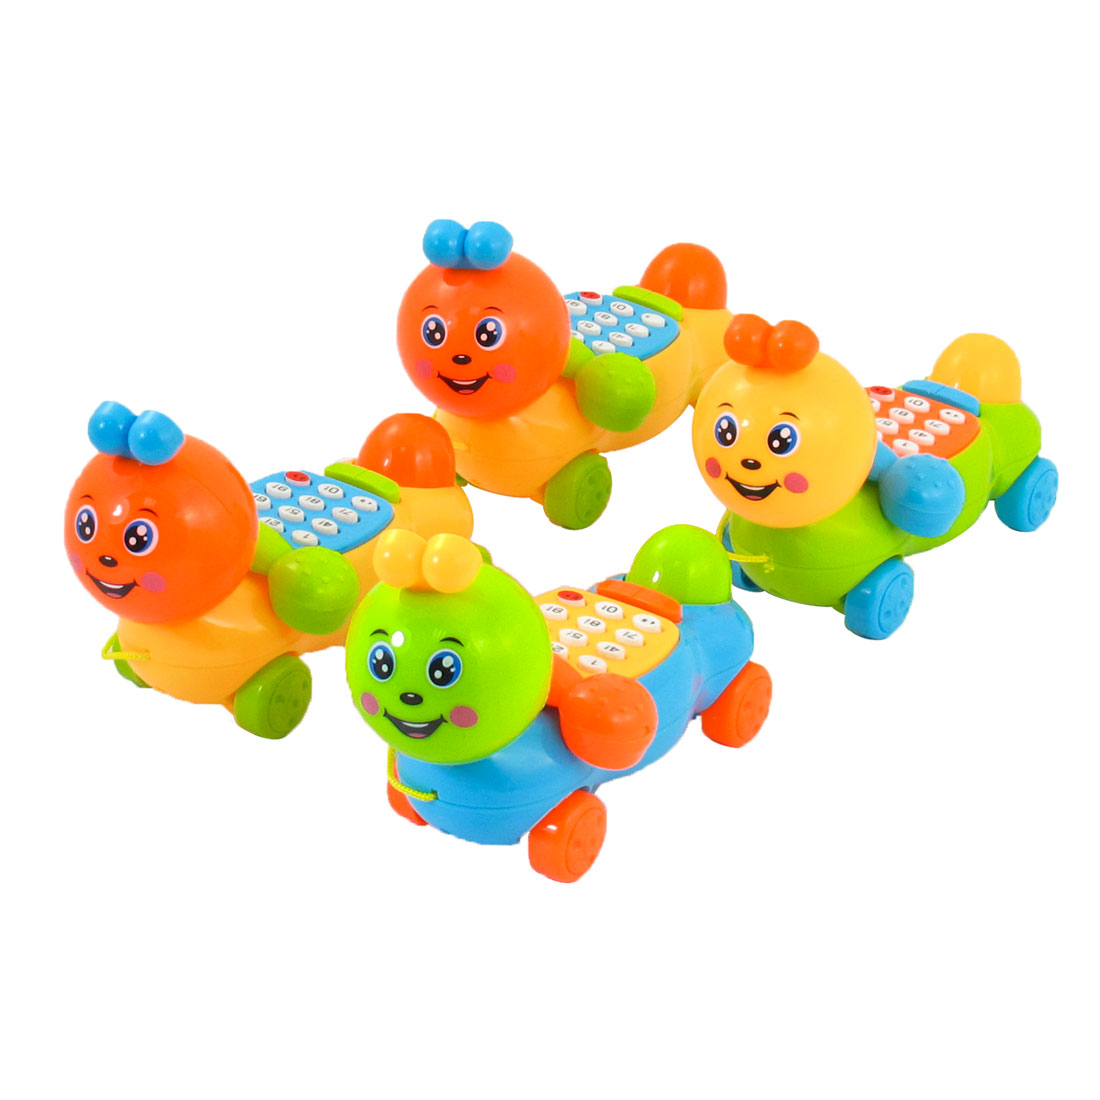 4 Pcs Assorted Color Plastic Caterpillar Shapes Music Telephone Toy for Children